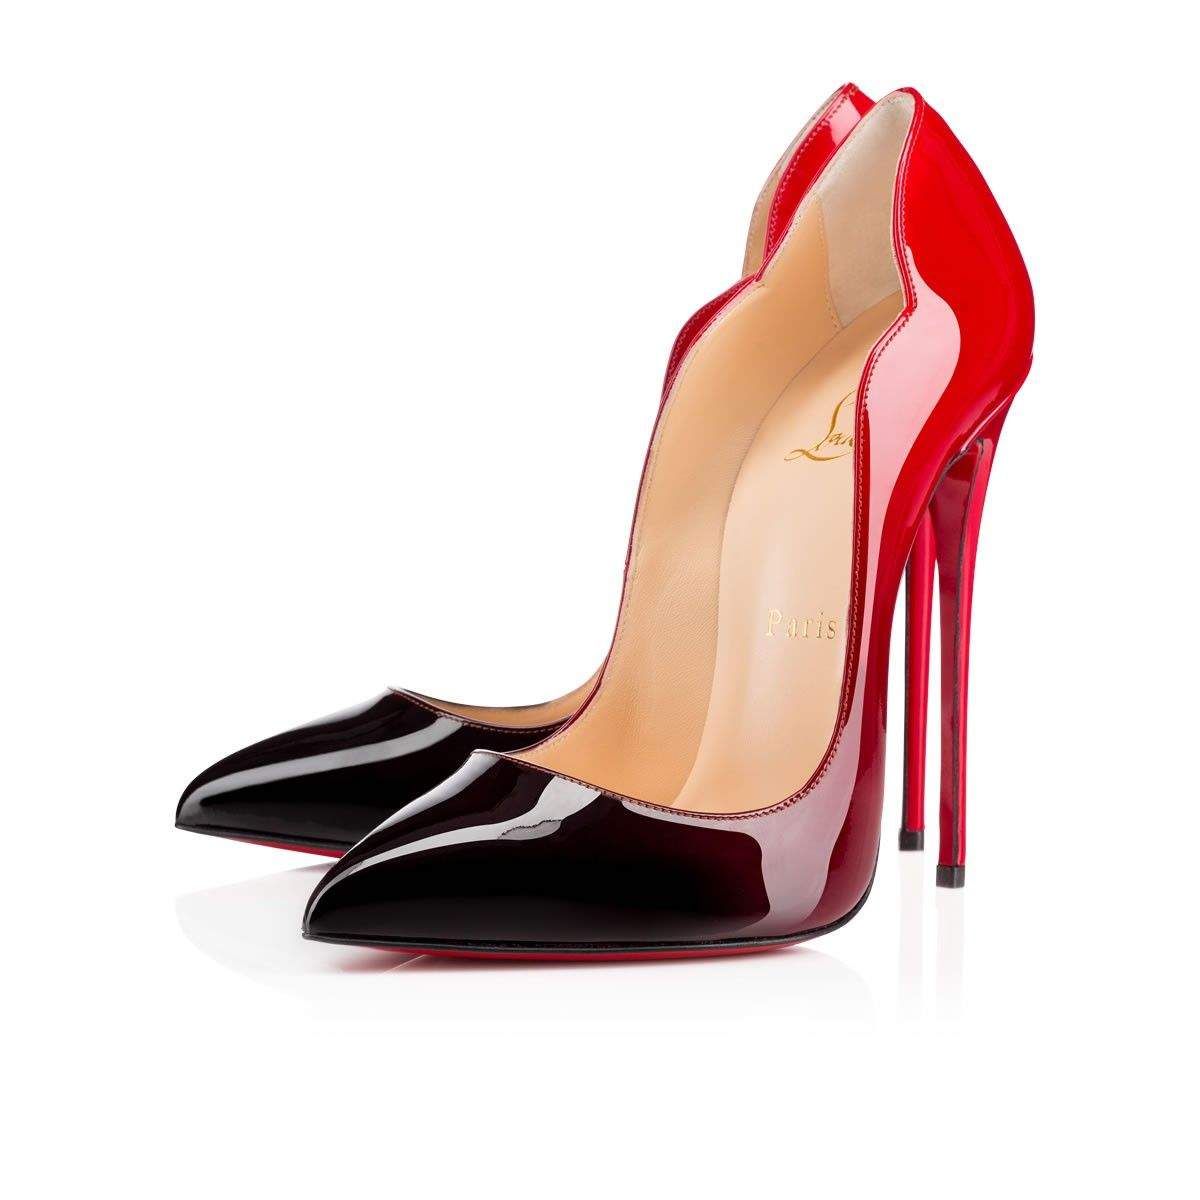 Christian Louboutin Malaysia Official Online Boutique - Hot Chick 130 BLACK-RED  Patent available online. Discover more Women Shoes by Christian Louboutin